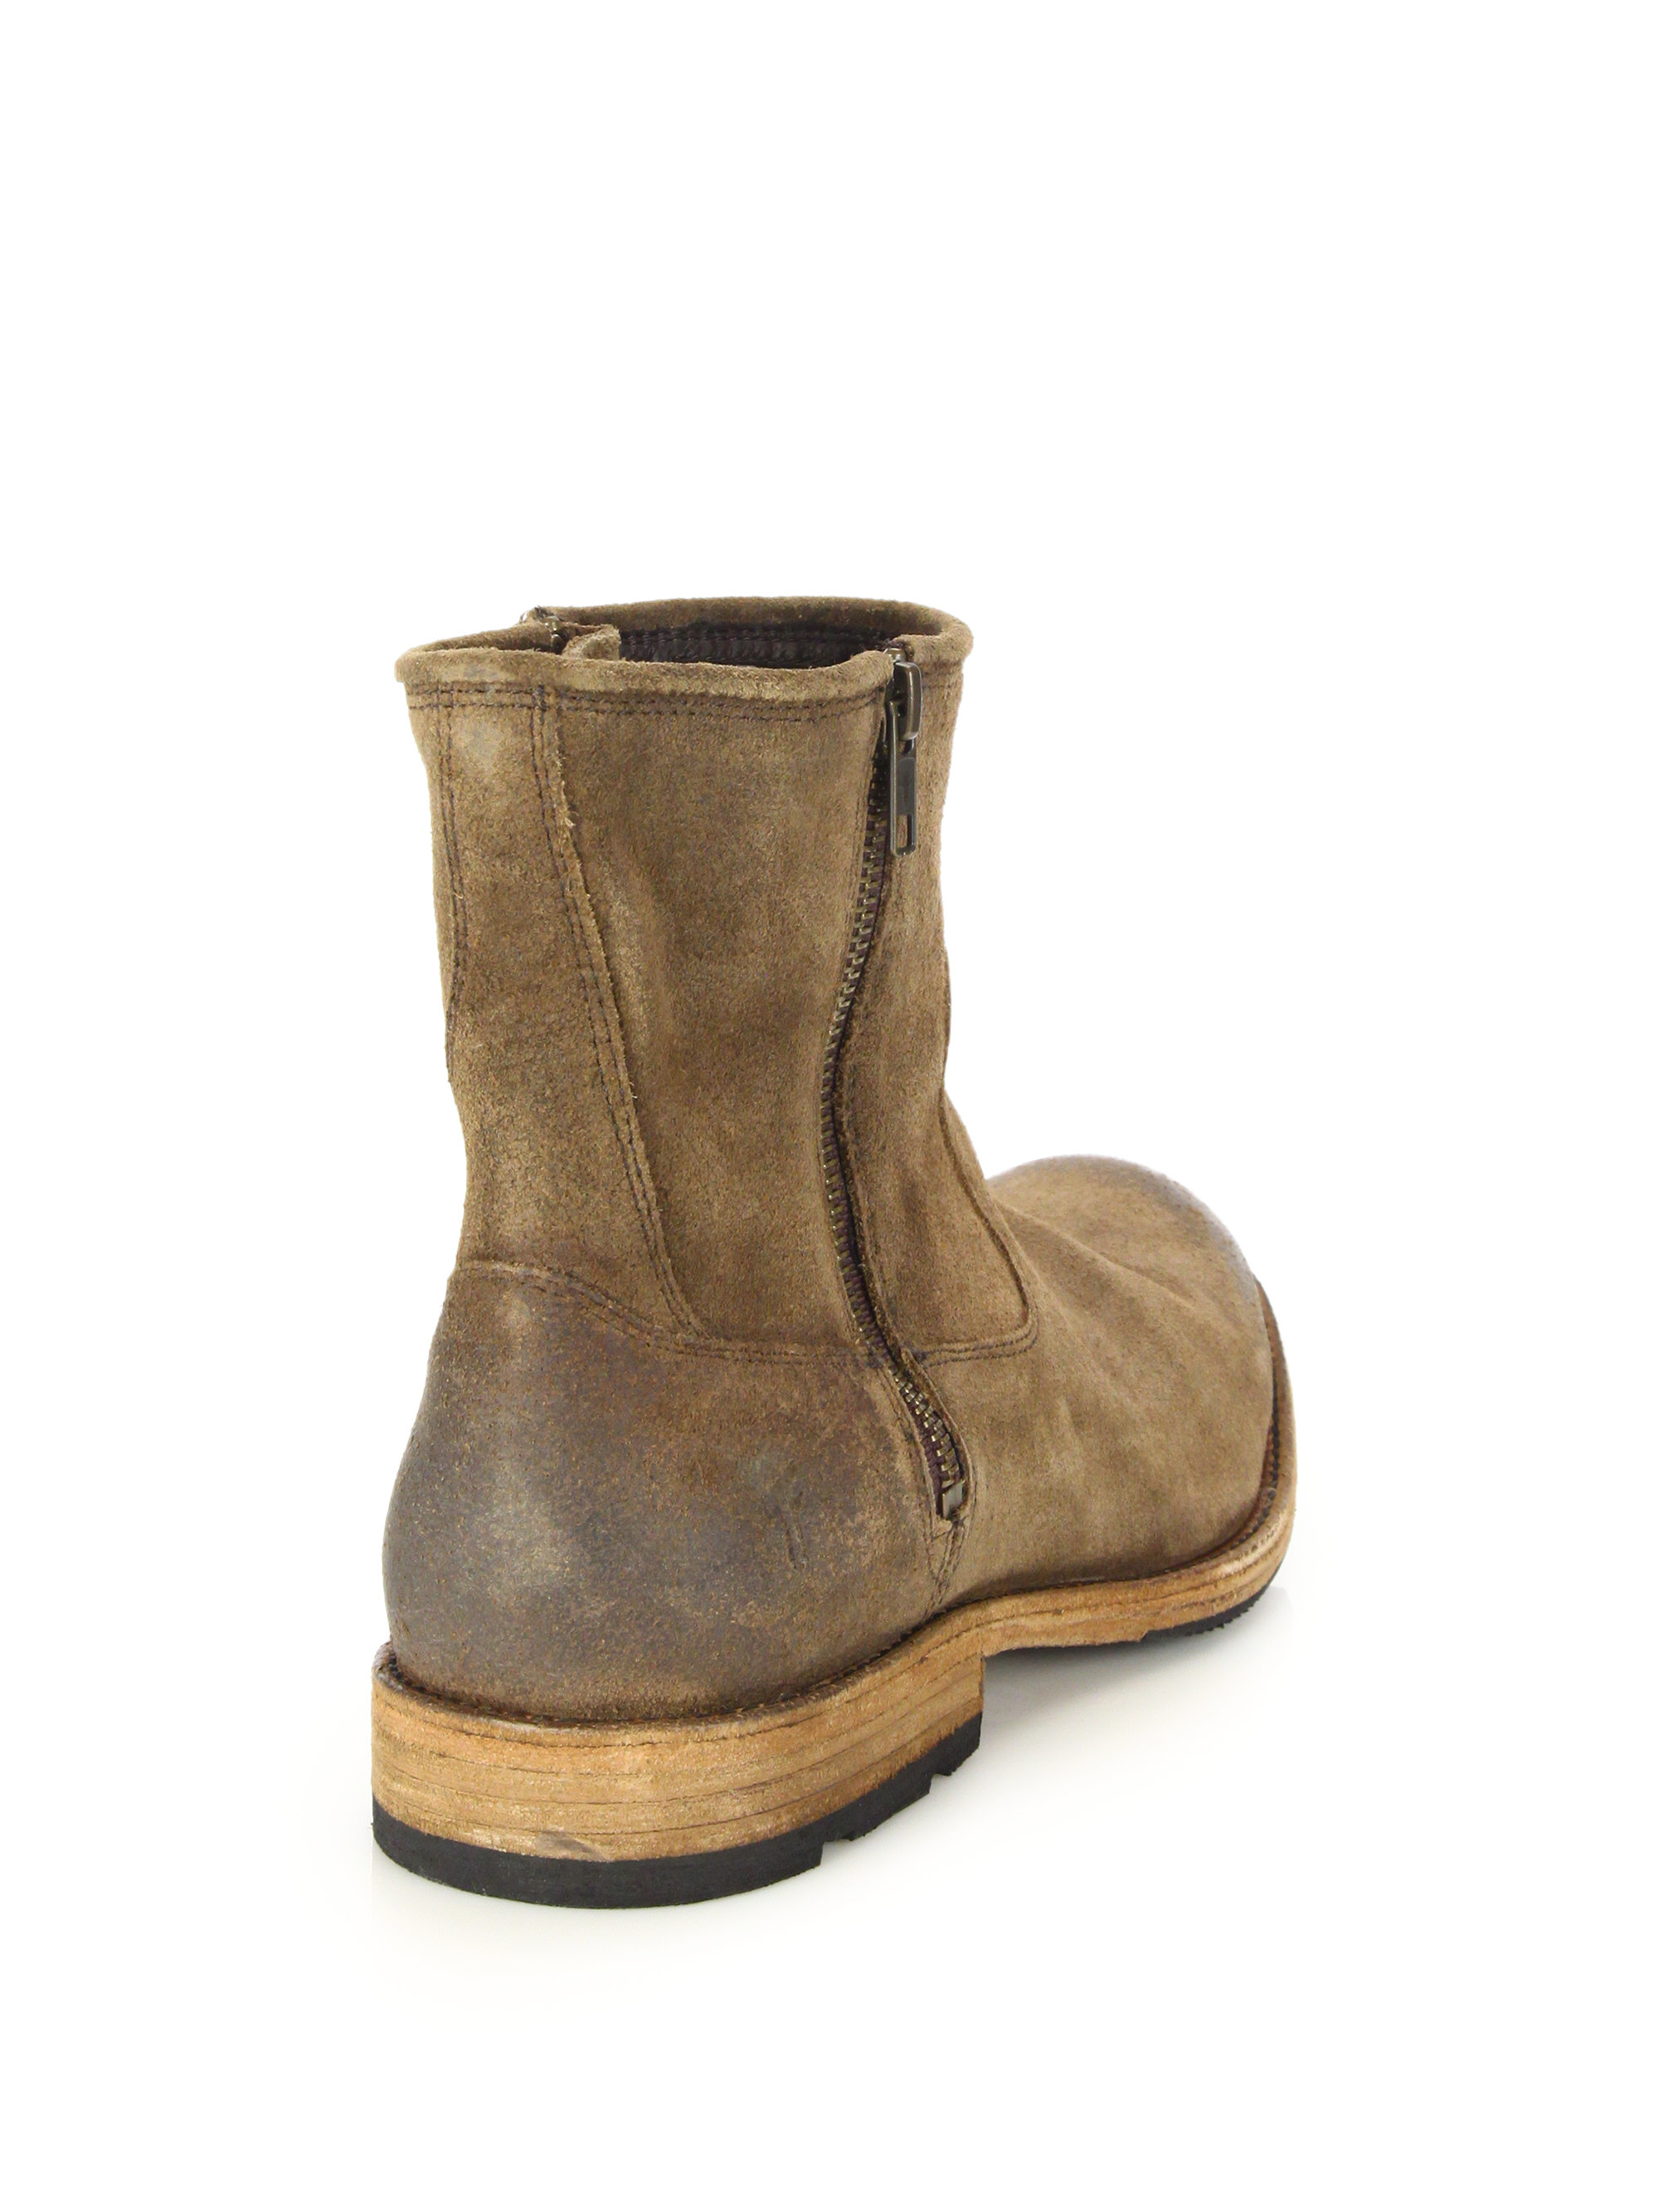 Lyst Frye Ethan Double Zip Leather Moto Boots In Brown